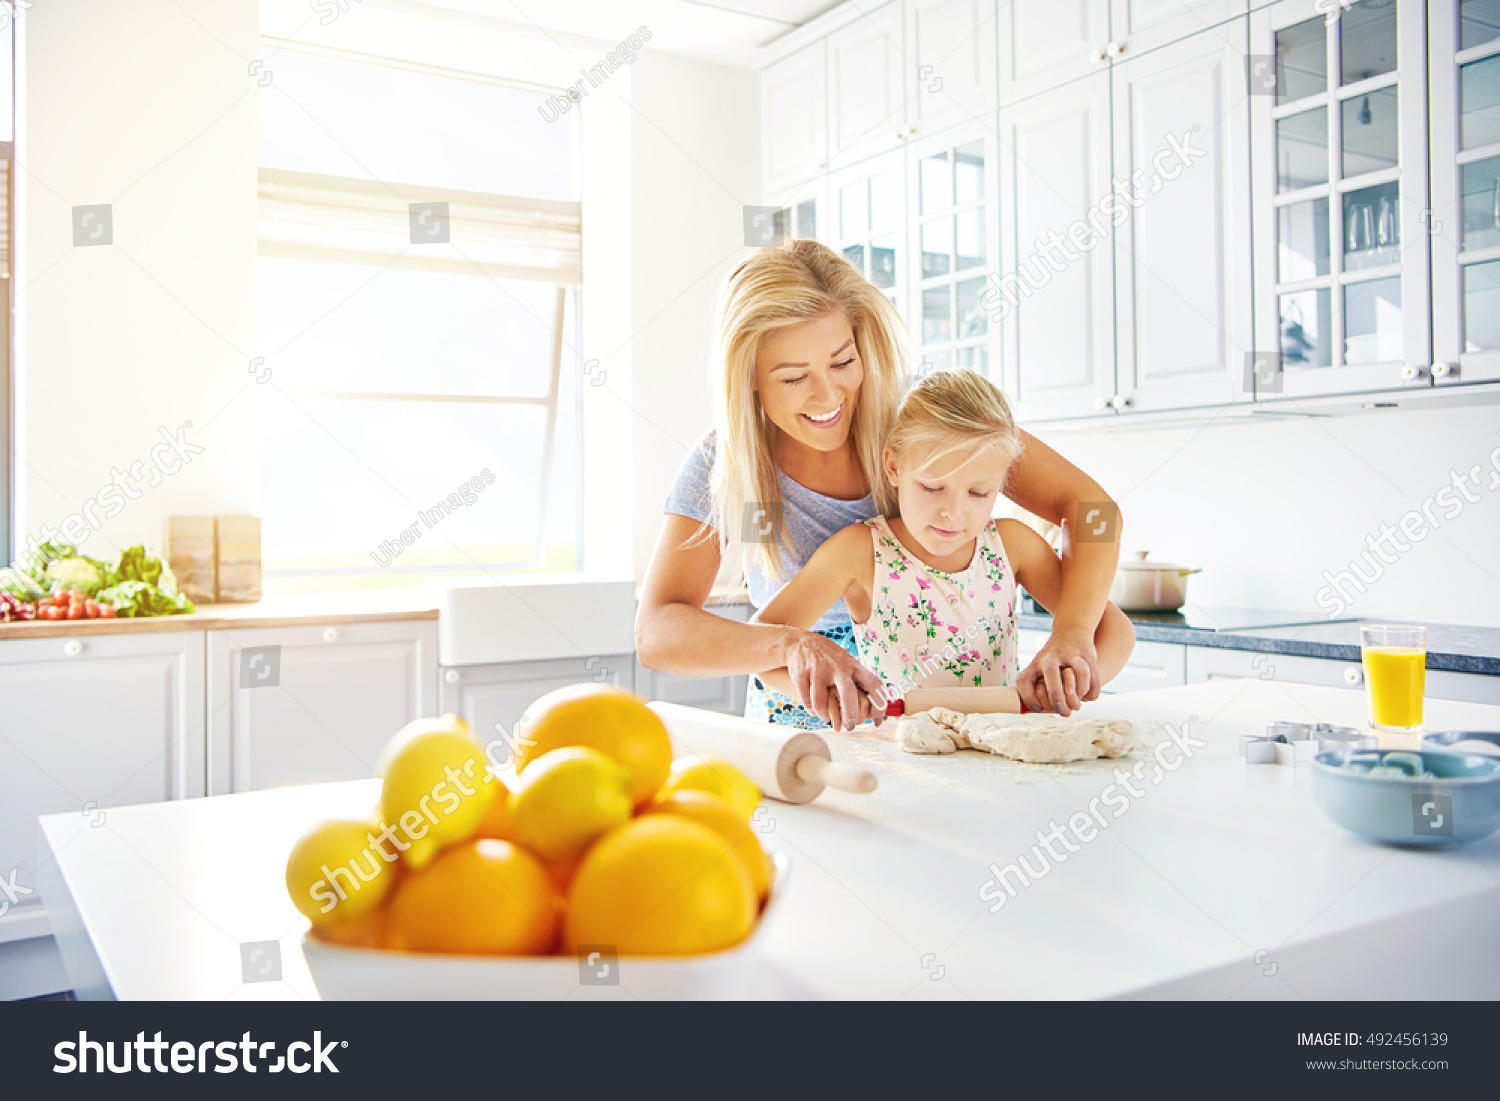 Smiling Happy Young Mother Teaching Her Stock Photo (Royalty Free ...